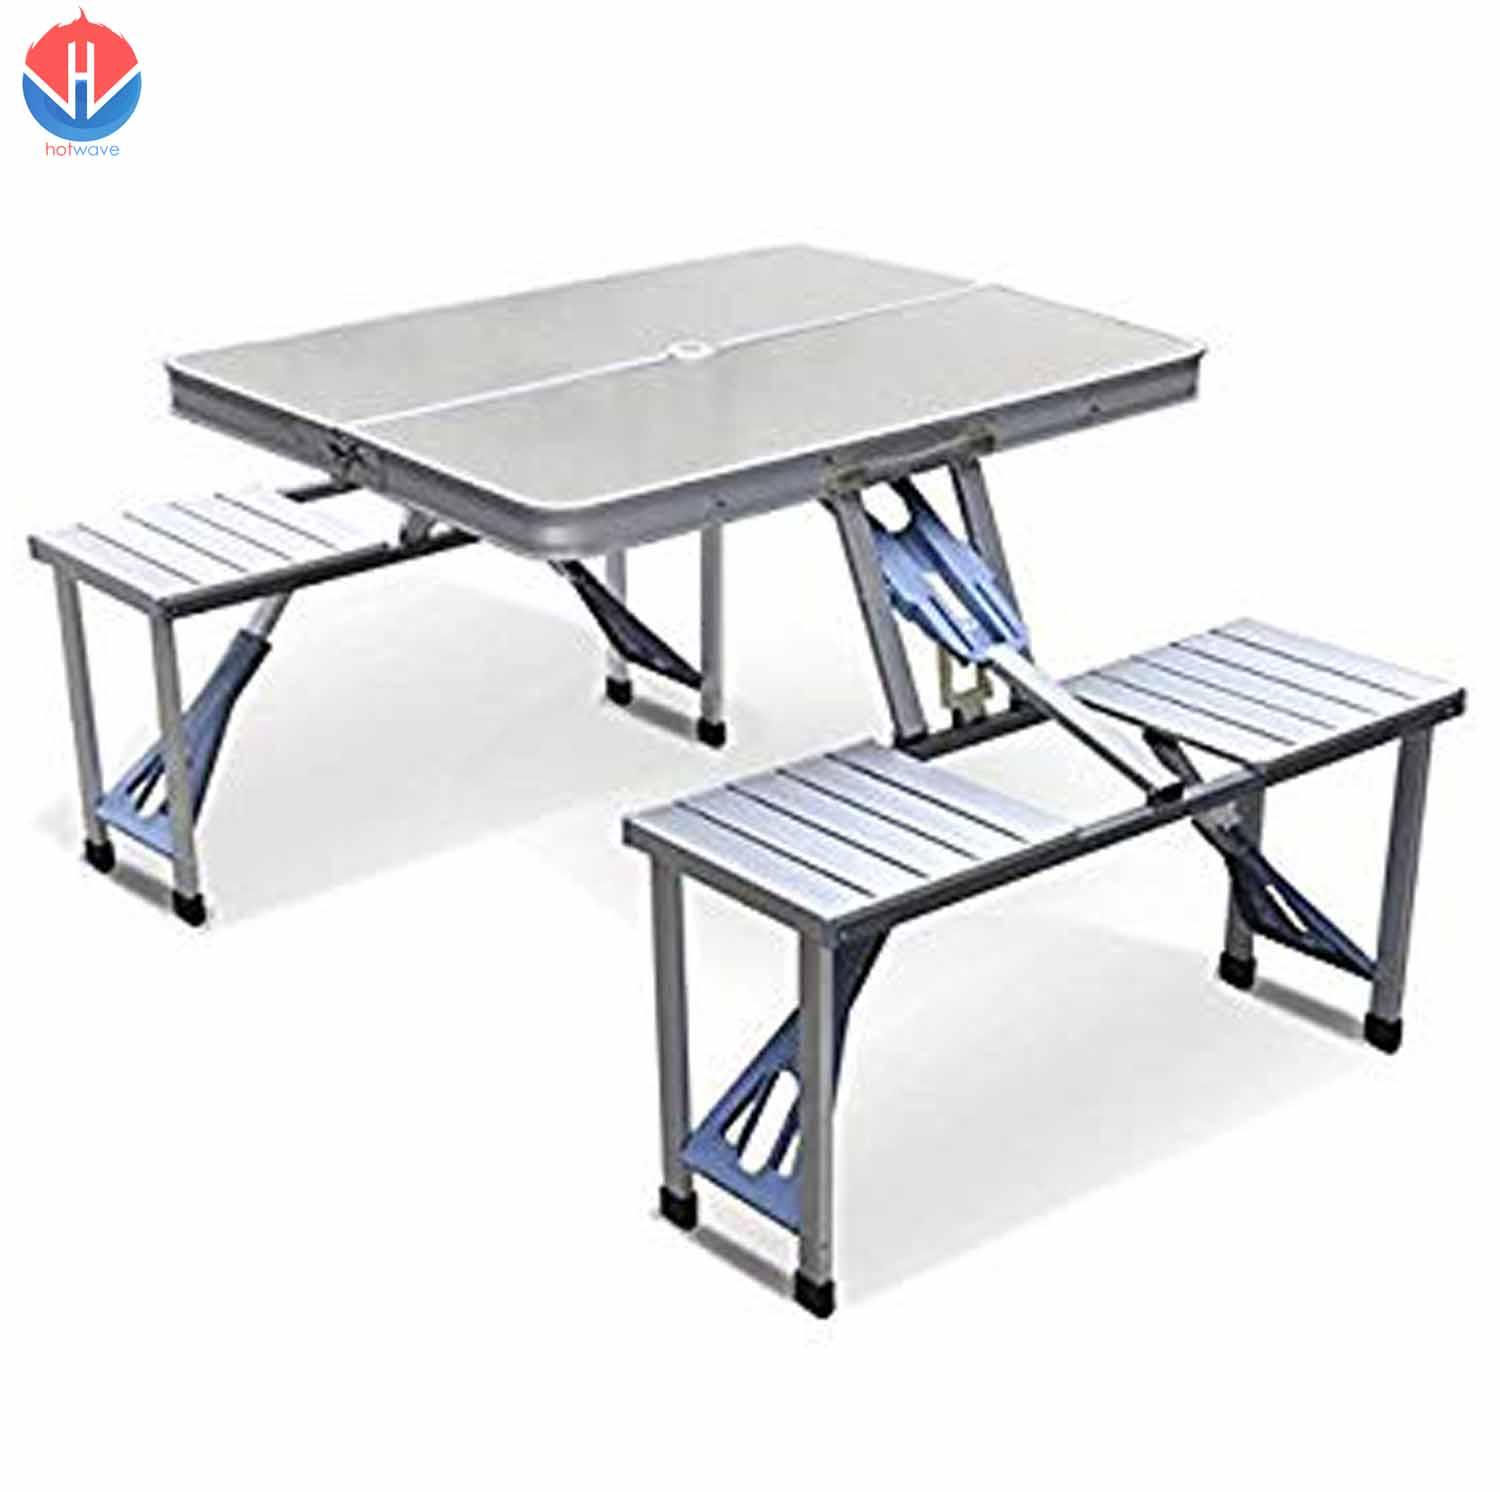 Fine Foldable Picnic Tables Outdoor Tables Set With 4 Stools Download Free Architecture Designs Scobabritishbridgeorg